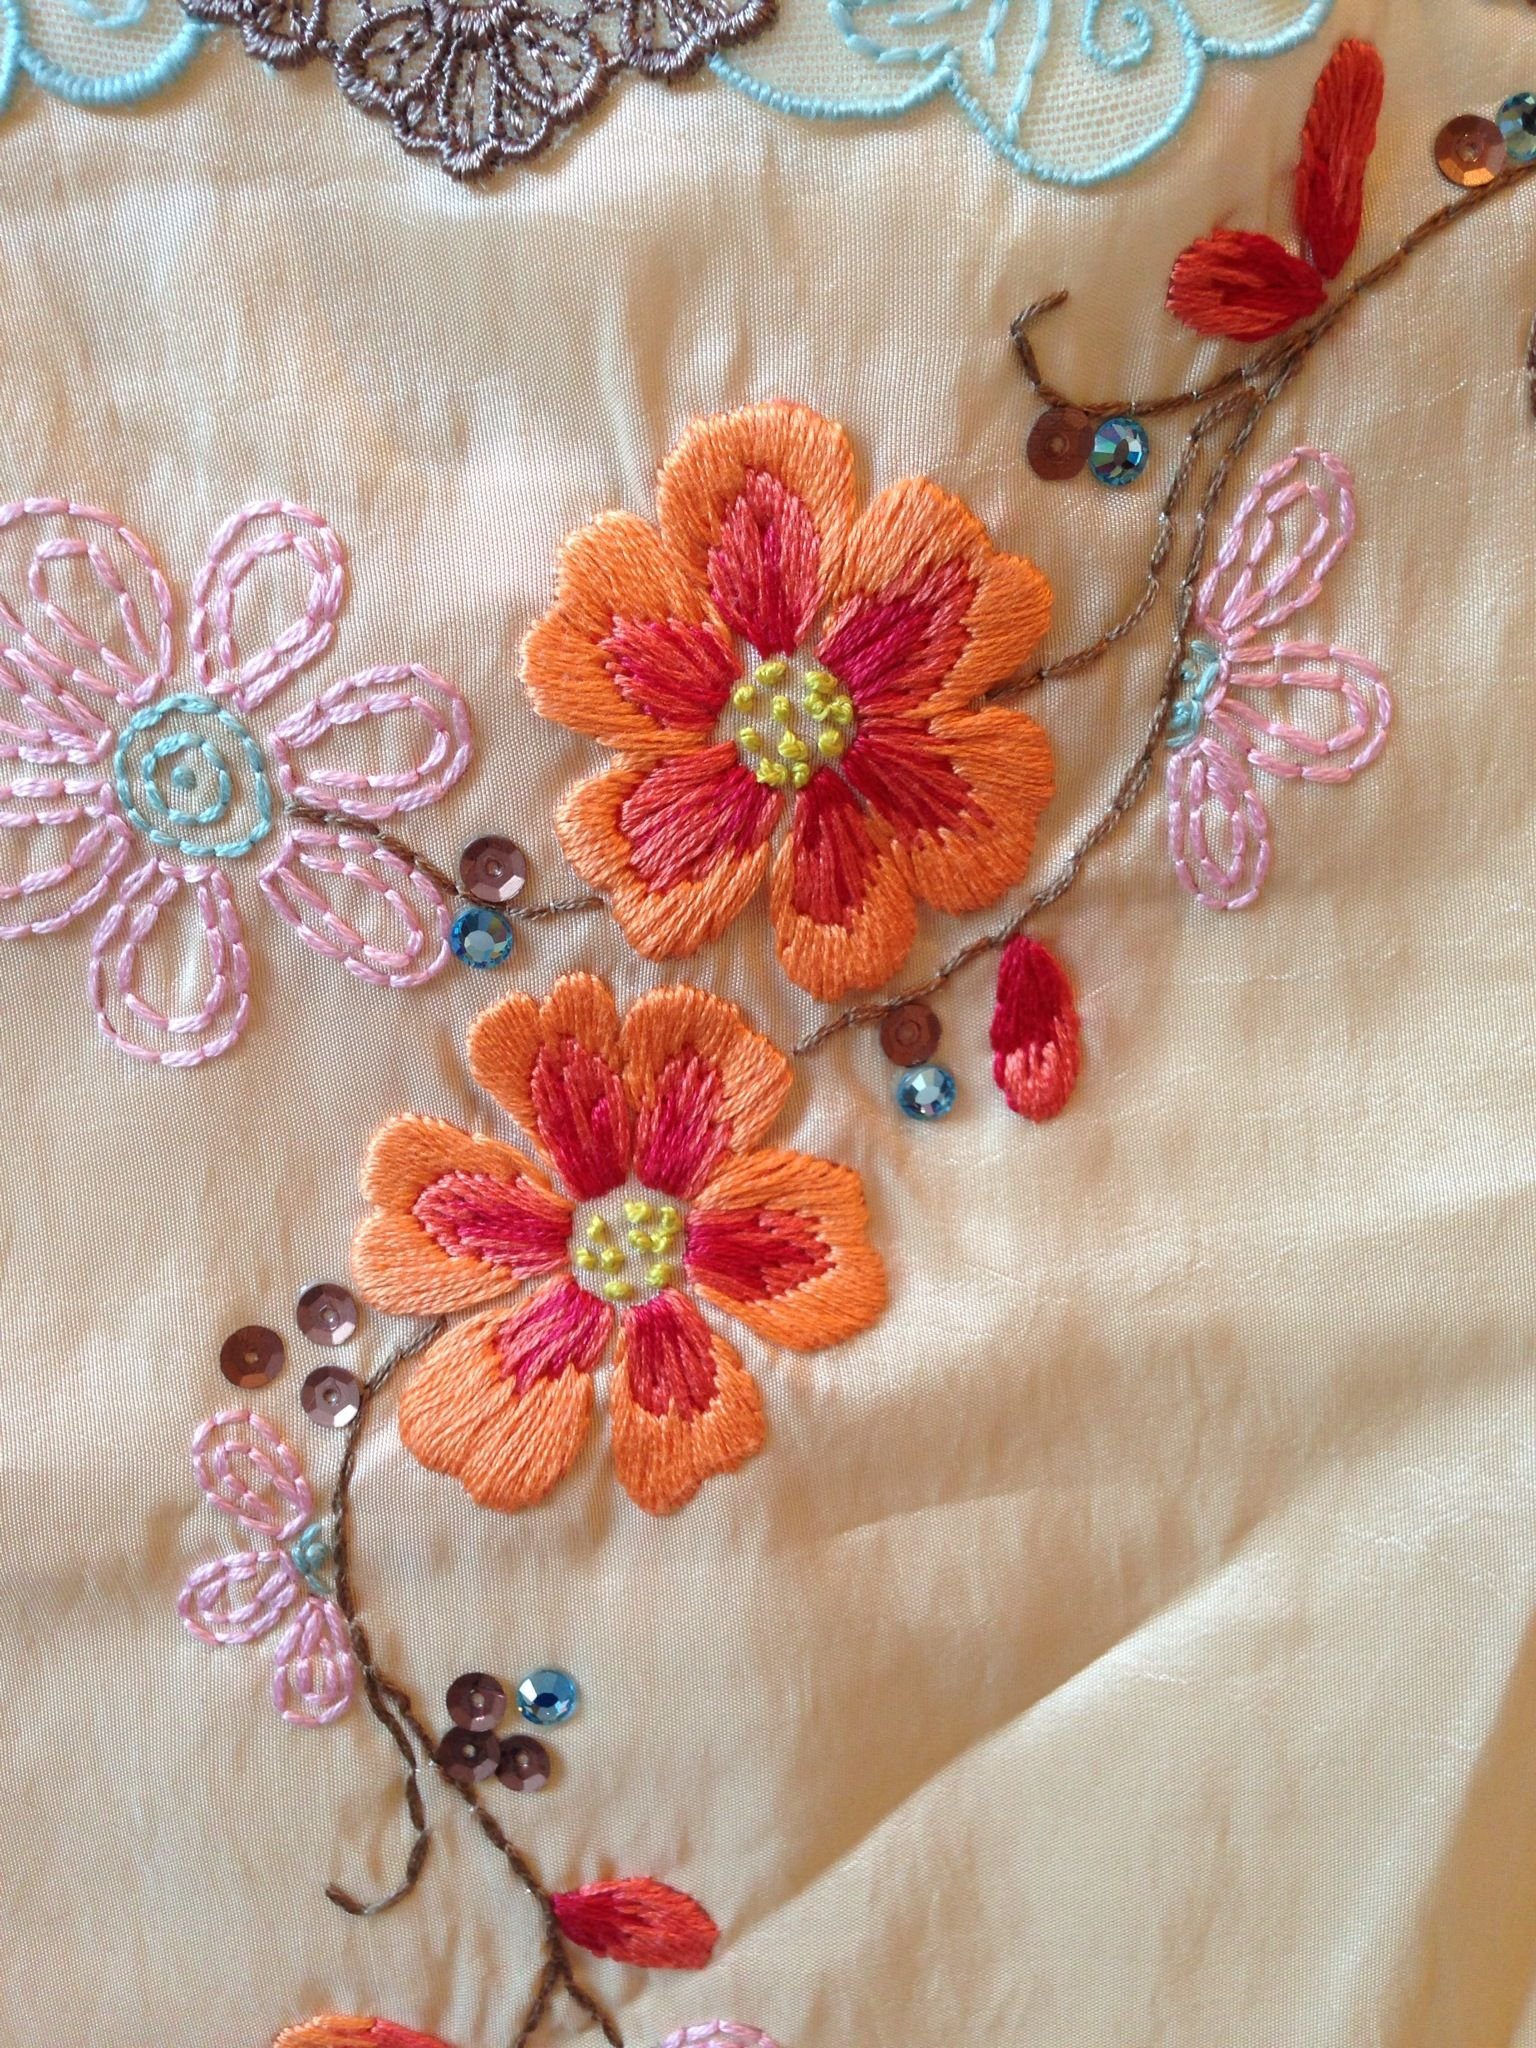 Embroidered flowers 자수프랑스 pinterest embroidered flowers